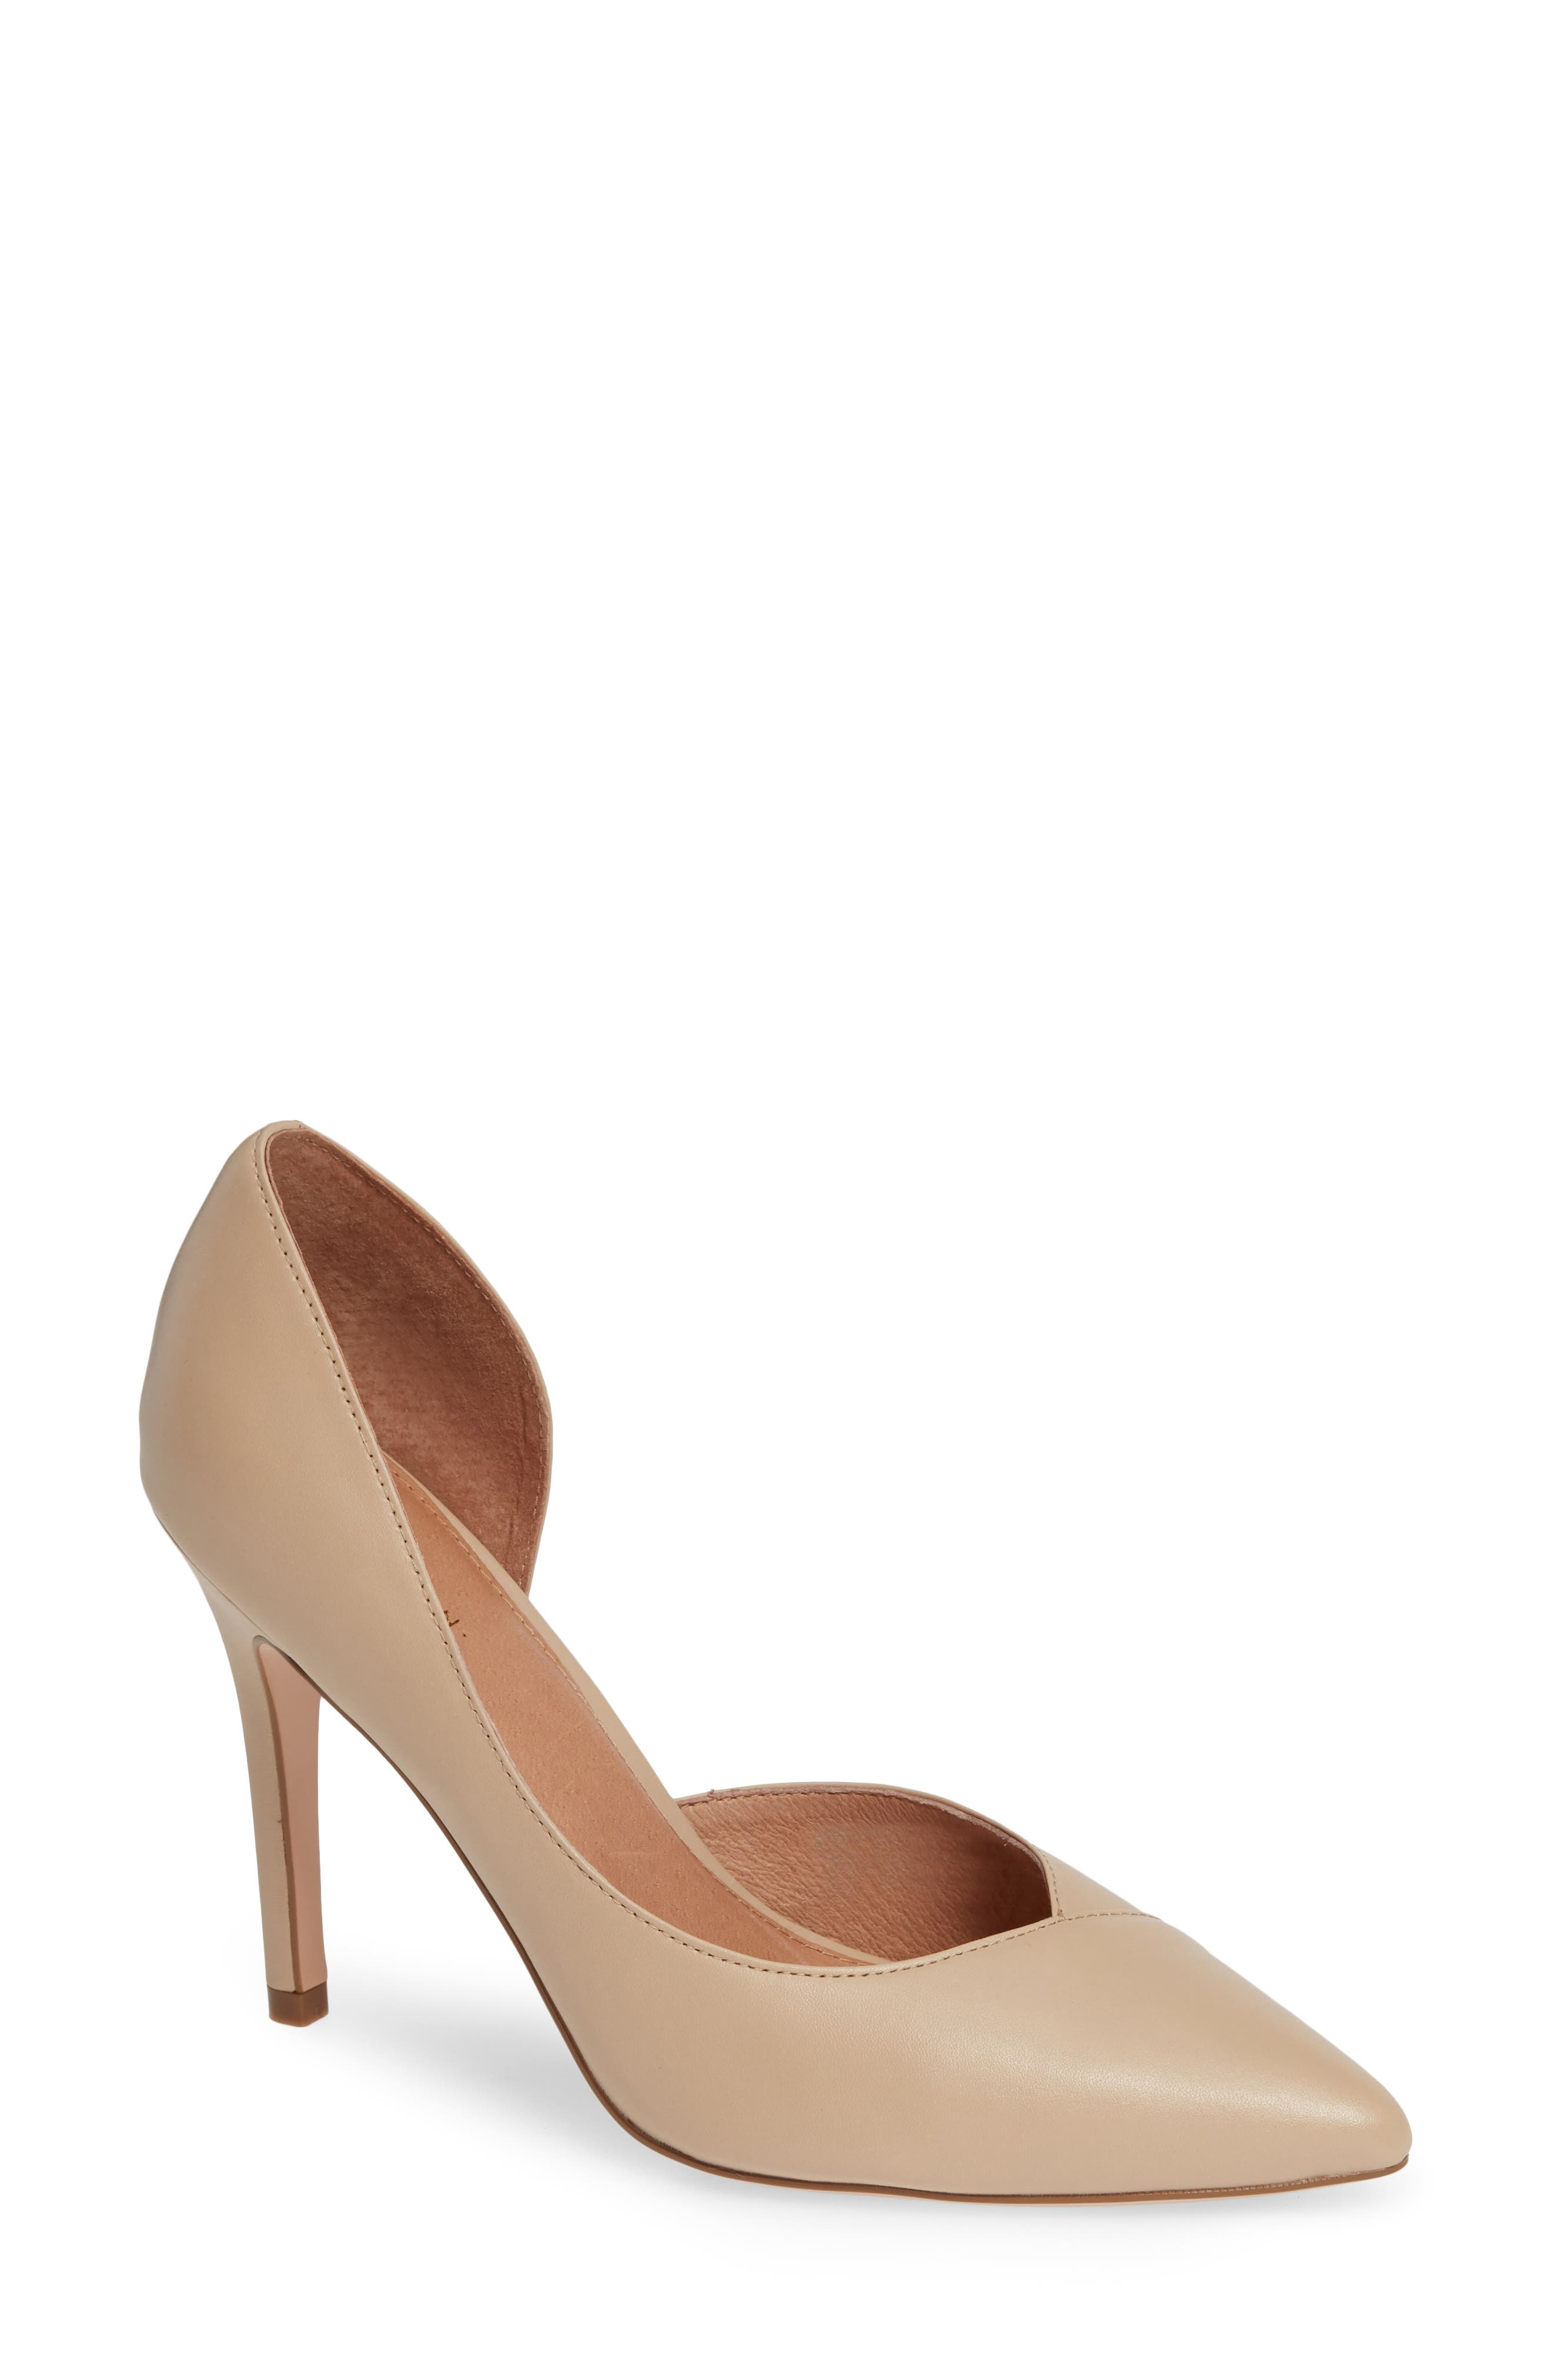 Autumn Pump,                             Main thumbnail 1, color,                             NUDE LEATHER